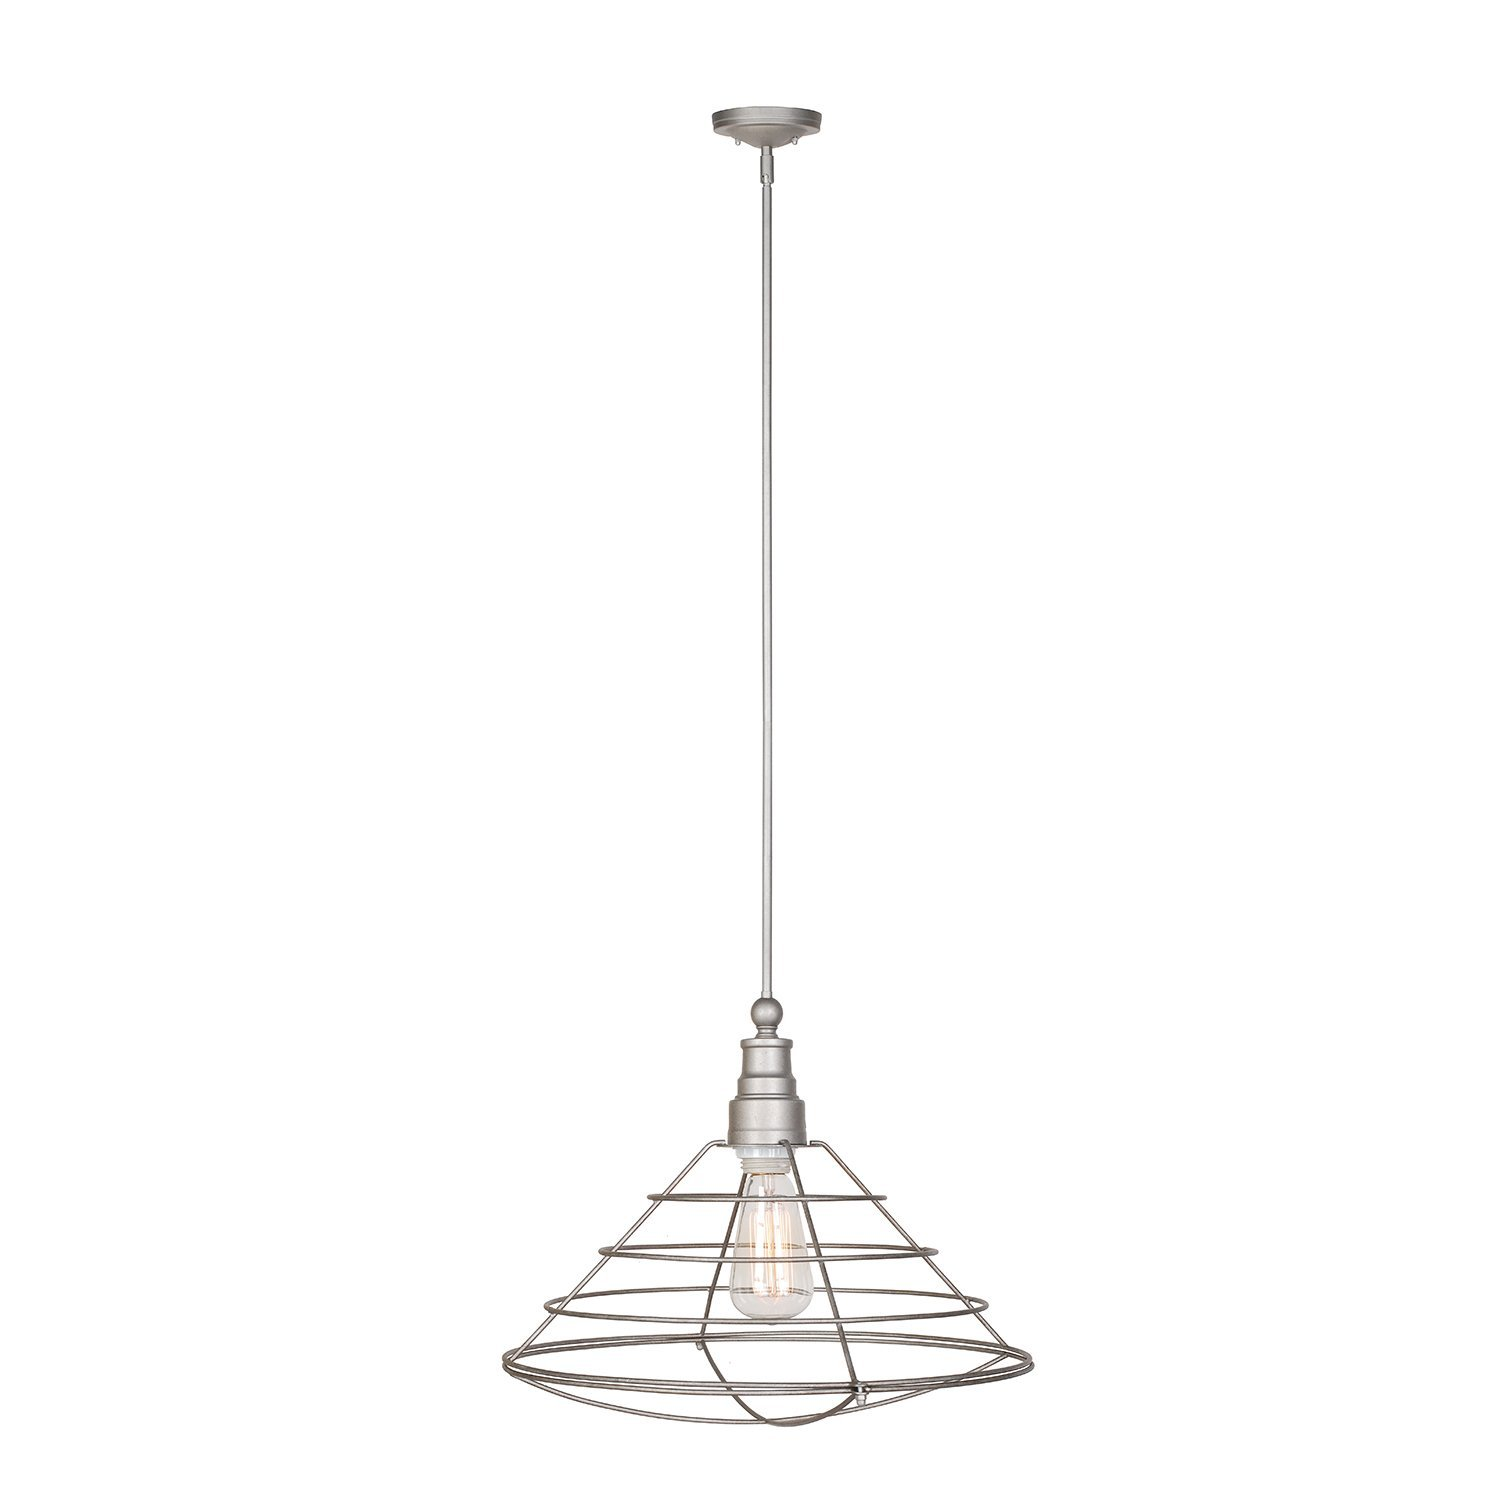 Design House Ajax 1-Light Pendant, Galvanized Finish - 519660